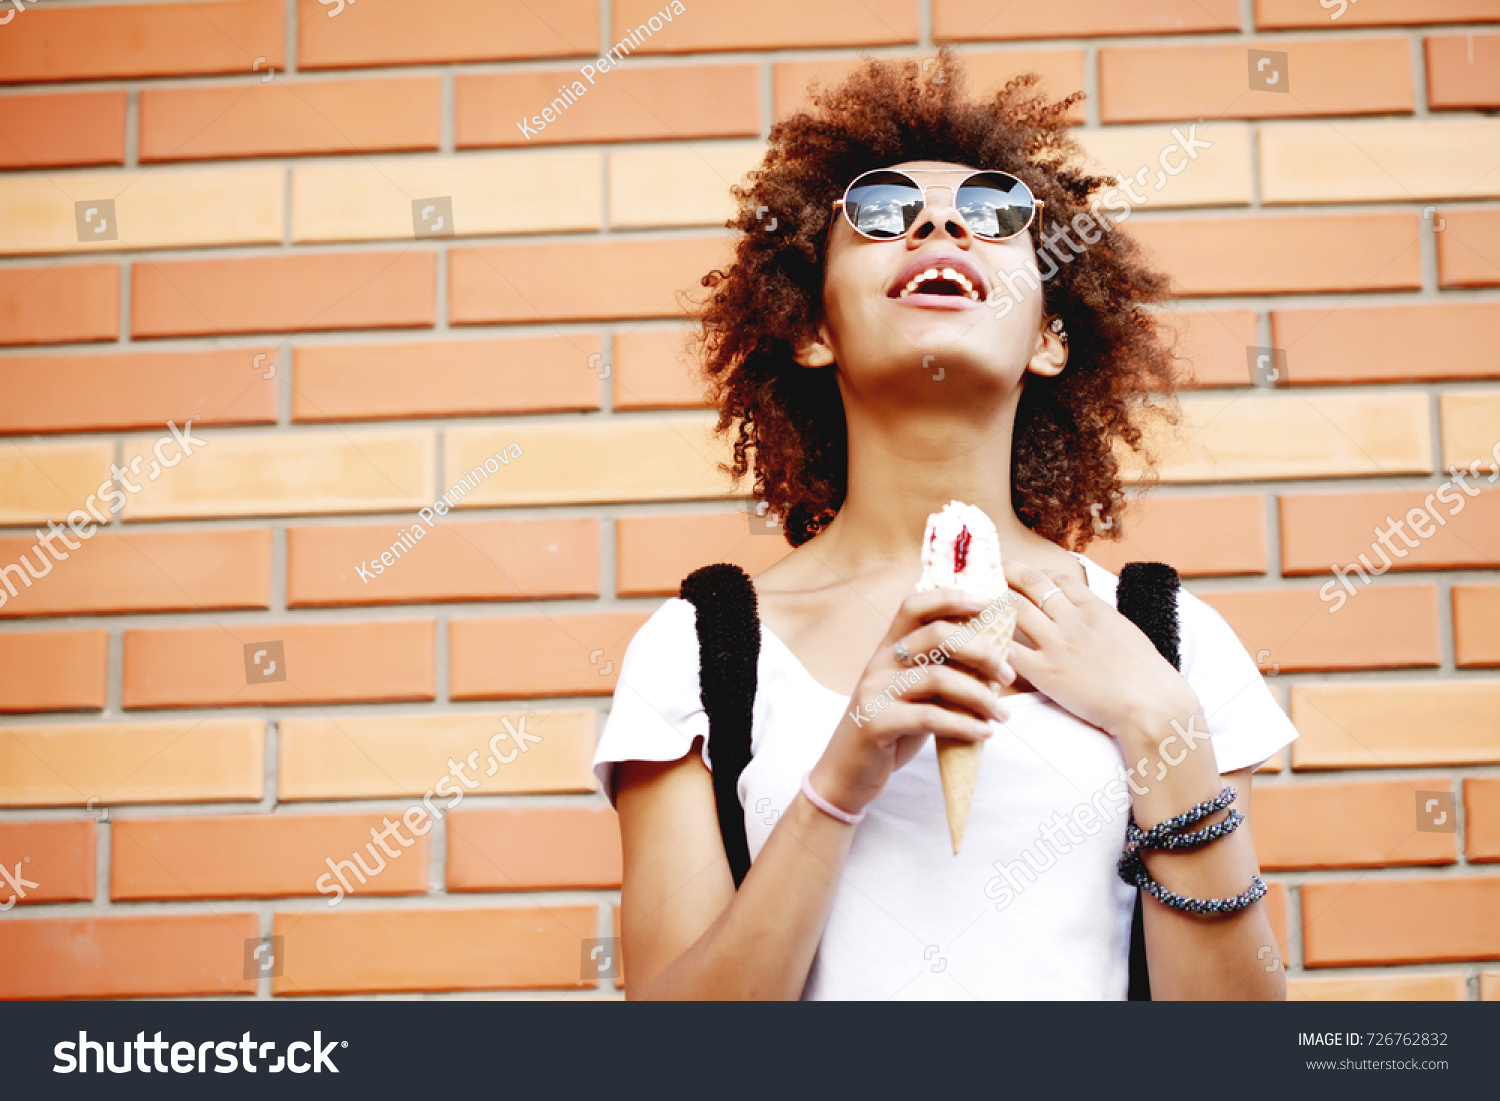 Outdoor closeup fashion portrait of afro american hipster teen crazy girl  eating ice cream in summer